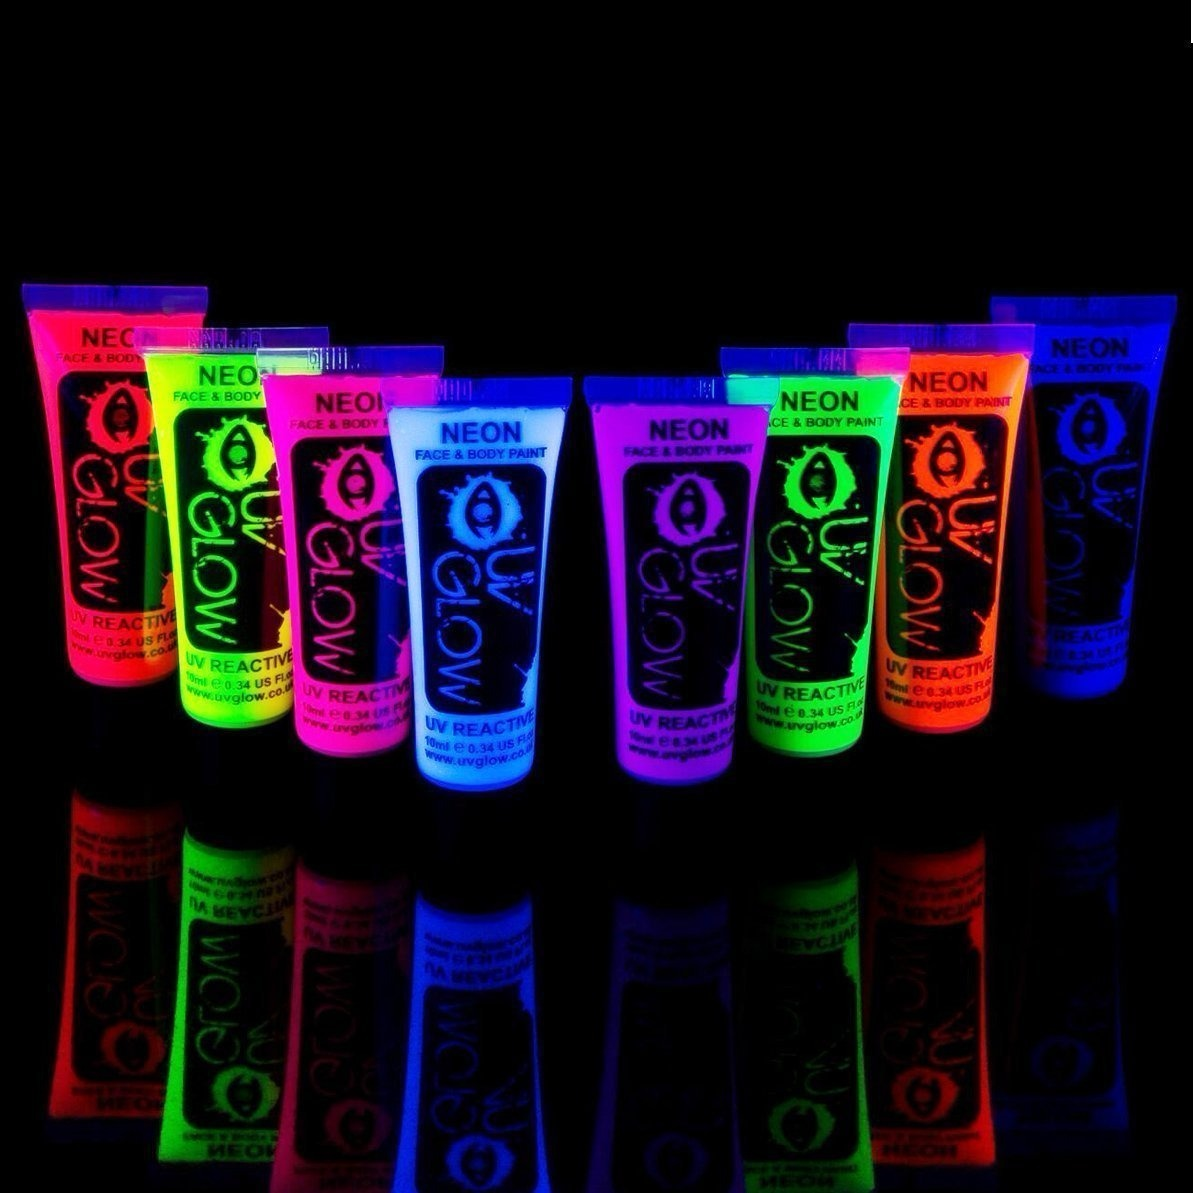 Pinturas Body Paint 6 Pintura Facial Neon Luminosa Uv Body Paint Luz Negra